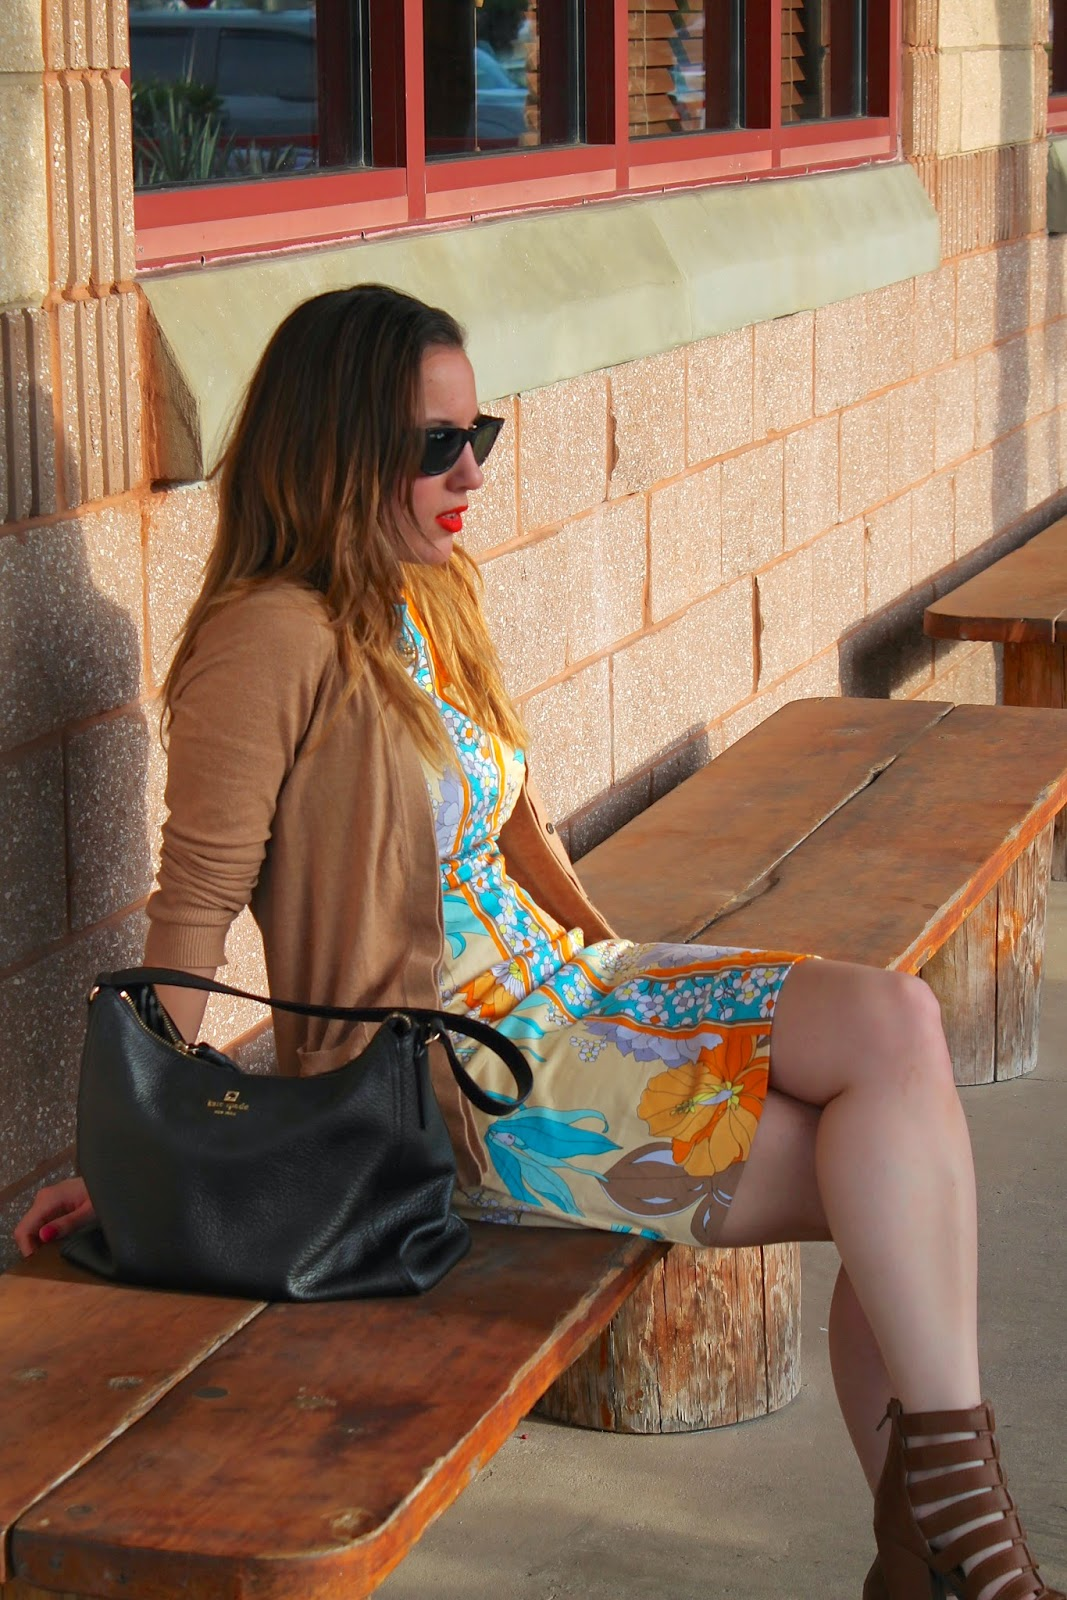 Timex, Steve Madden, TJ Maxx, Kate Spade, LOFT, Ray-Ban, southern, prep, what i wore, ootd, fashion, style, preppy, classic, feminine, street style, office attire